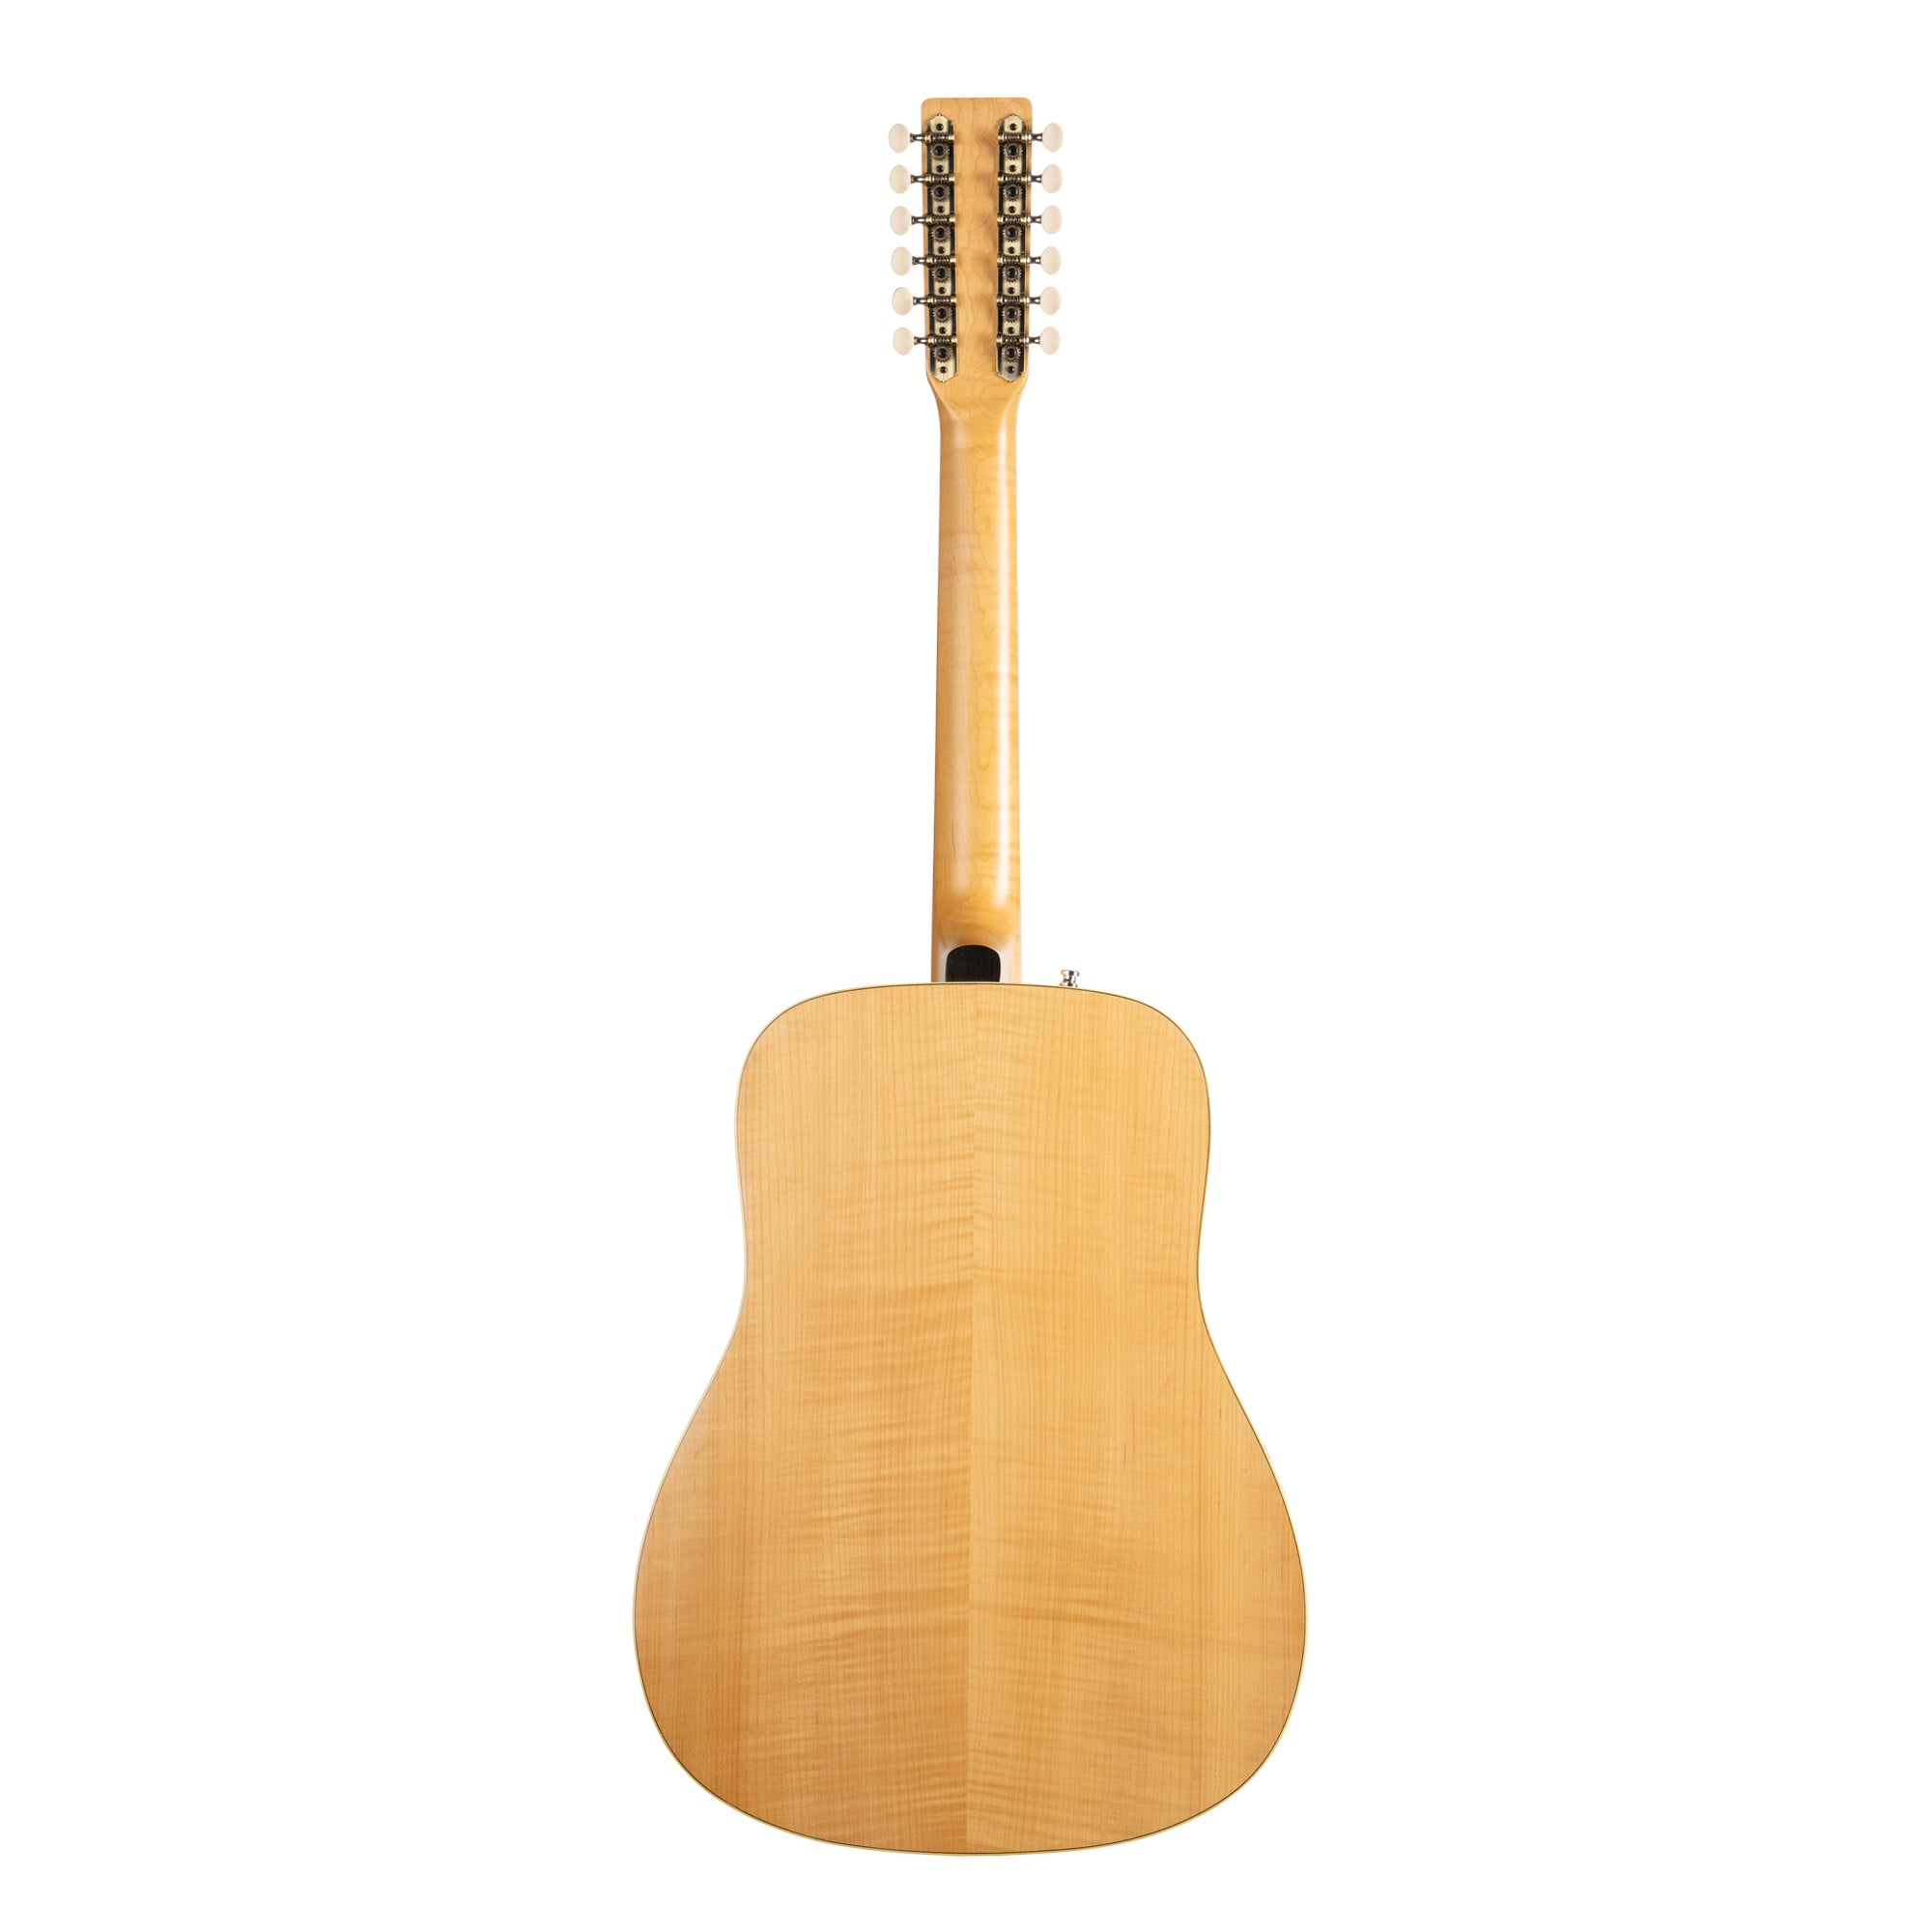 Norman B50 12 Natural SG ANTHEM Electric Acoustic 12 String Guitar